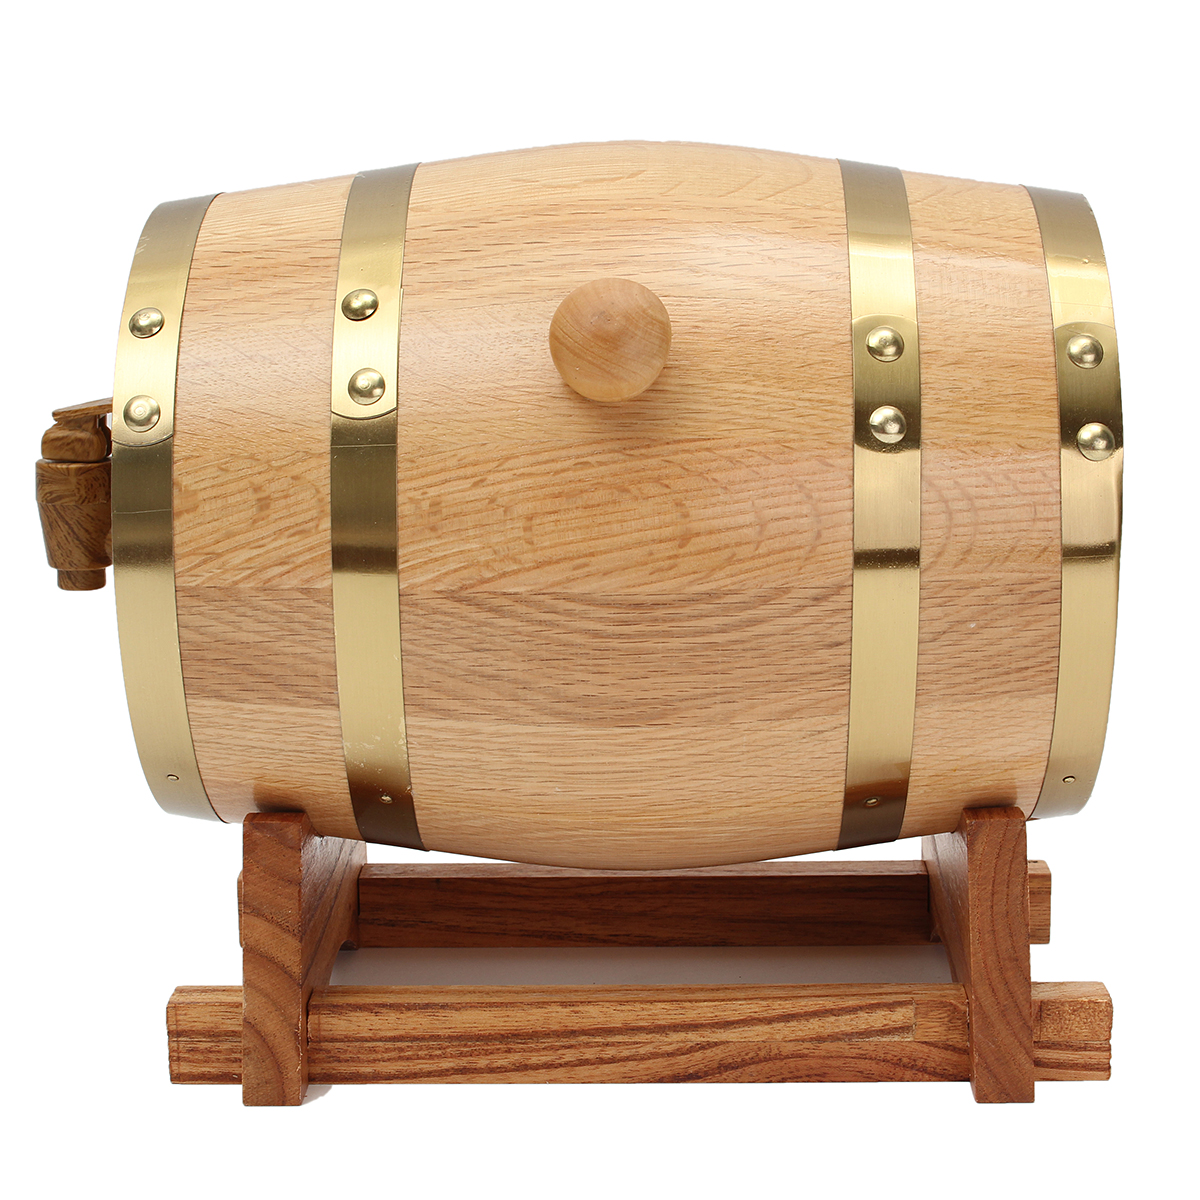 3L Wooden Barrel with Spigot for Whisky Wine Liquor Homebrew